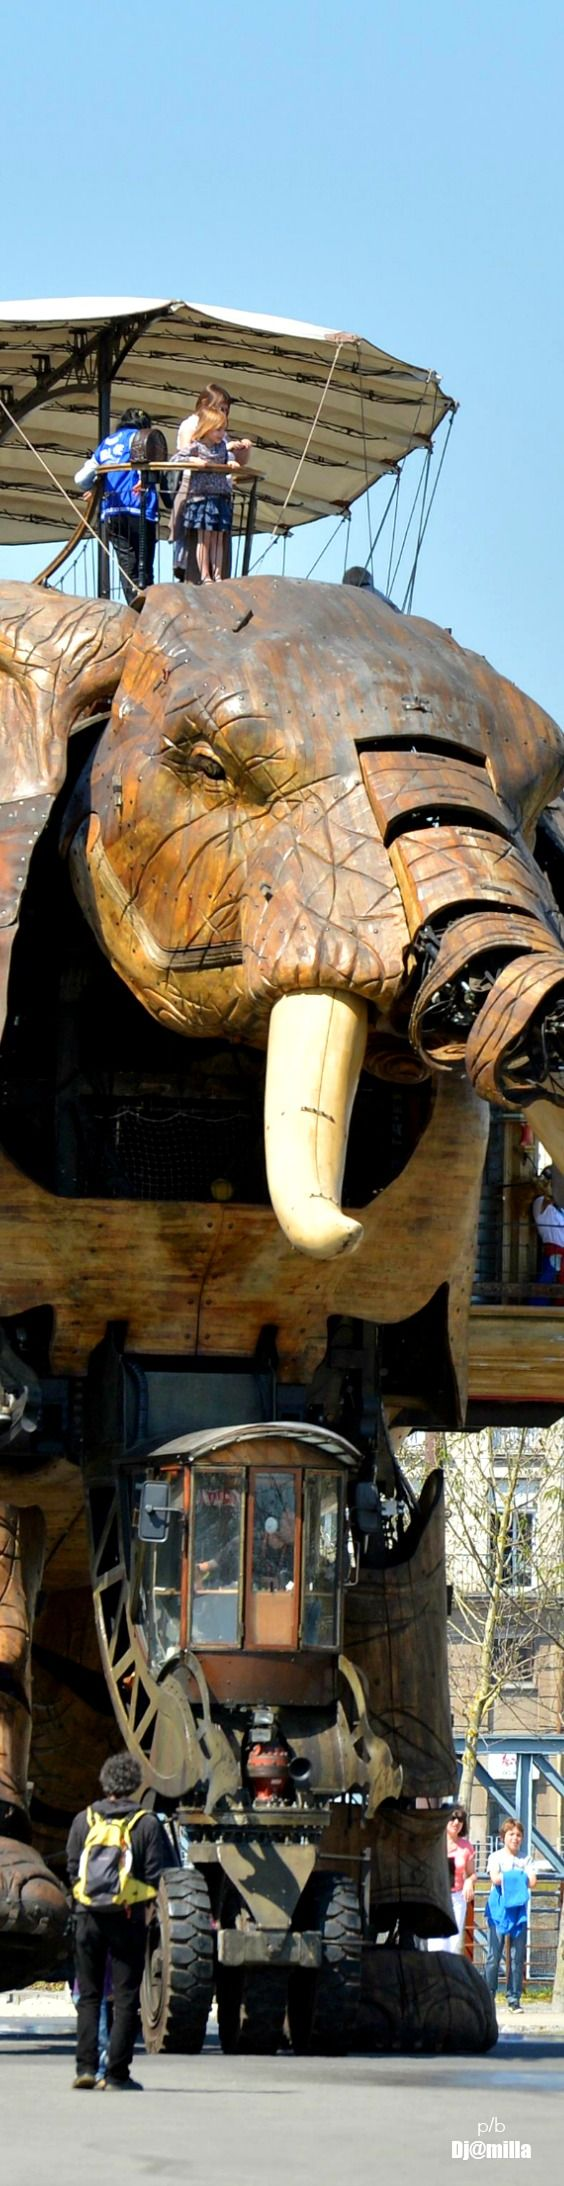 Art color nantes horaires - Machines Of The Isle Of Nantes The Great Elephant Le Grand Lephant